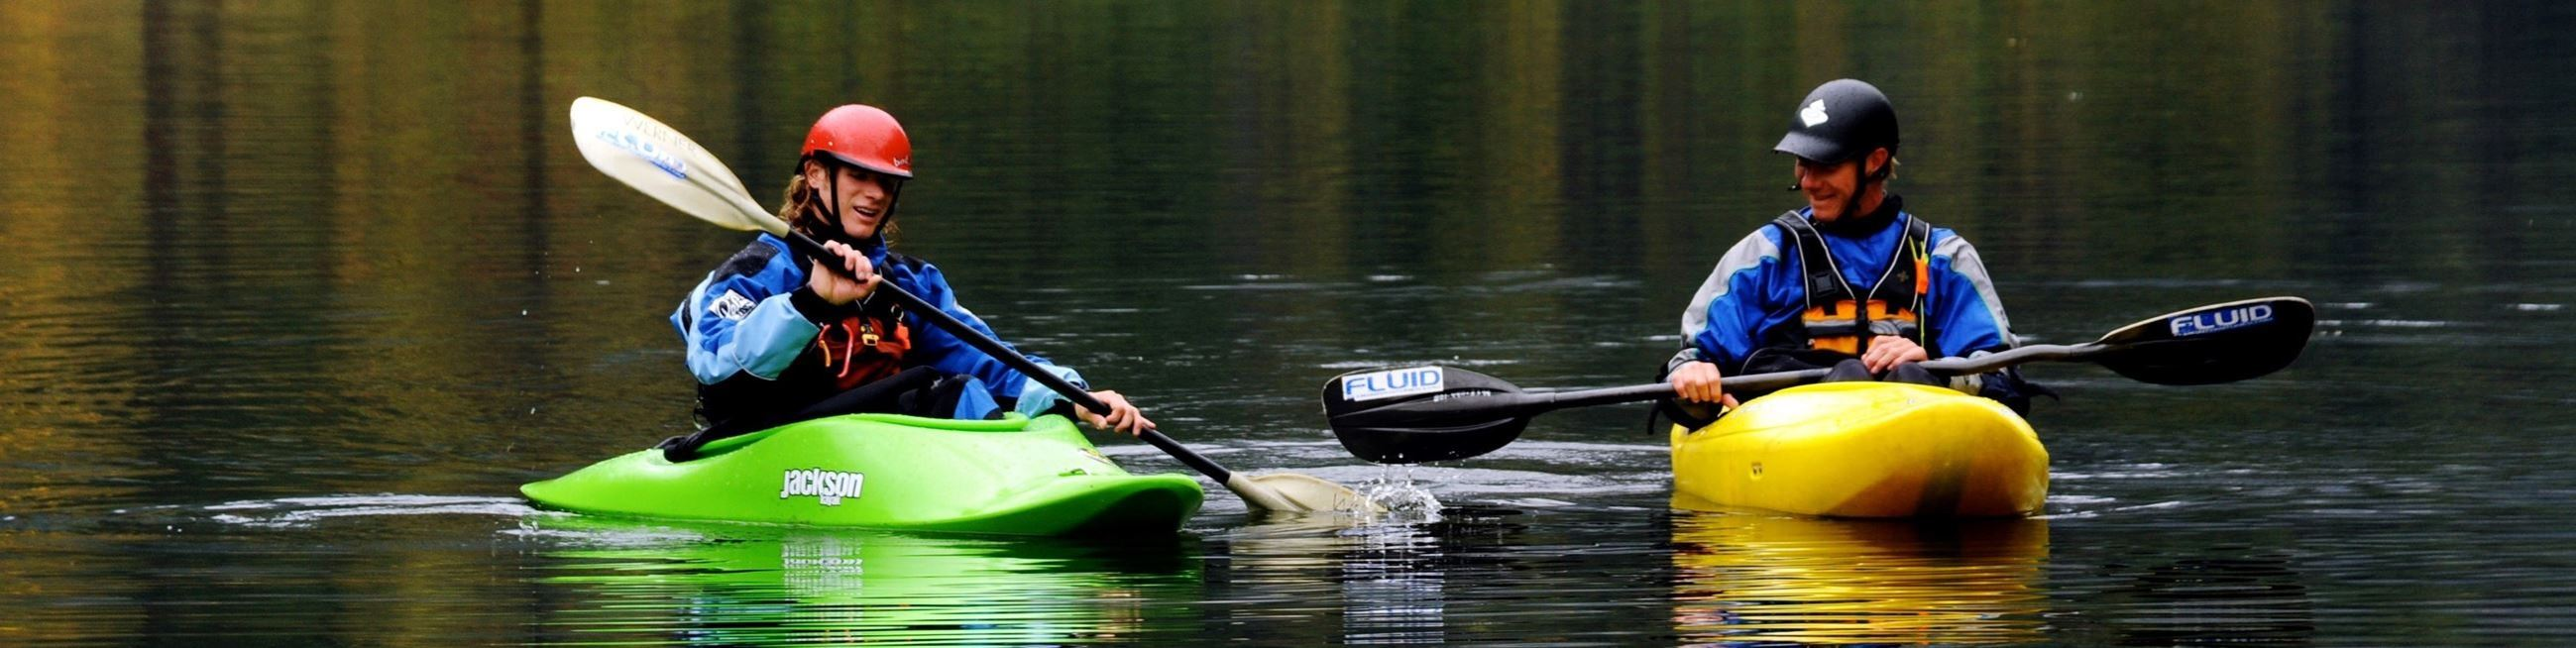 Kayaker on water